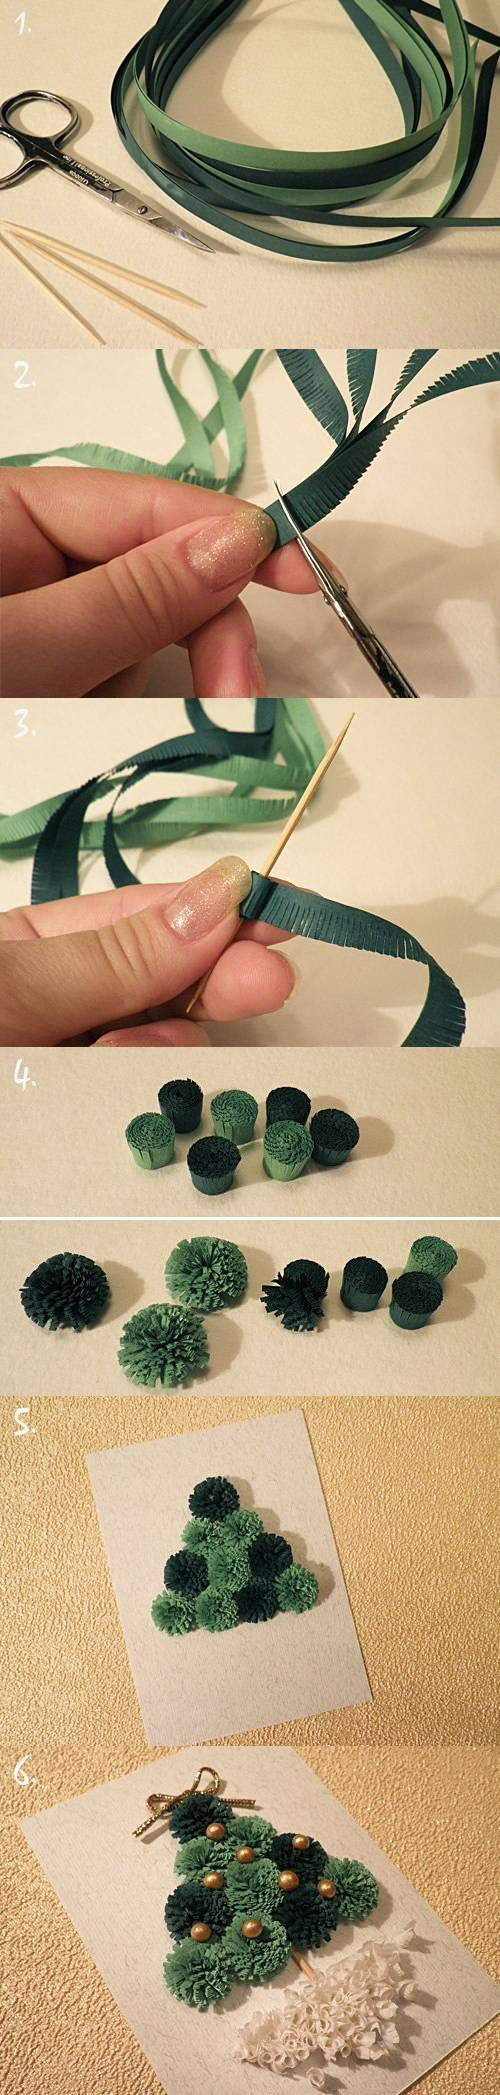 How To Make Quilled Christmas